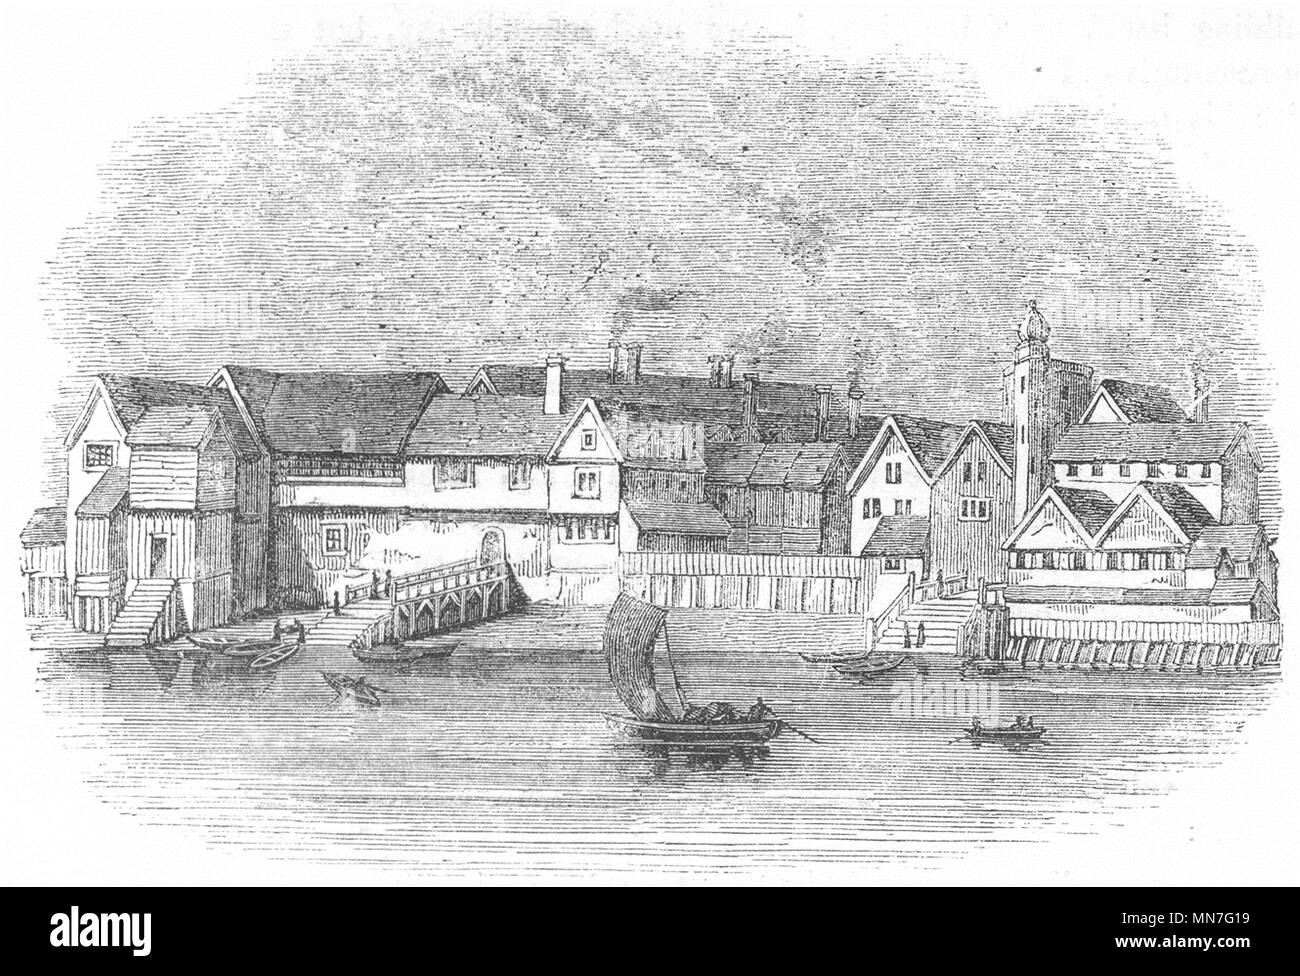 GERMAN MERCHANTS WHARF. Thames St steel Yd 1641 1845 old antique print picture - Stock Image